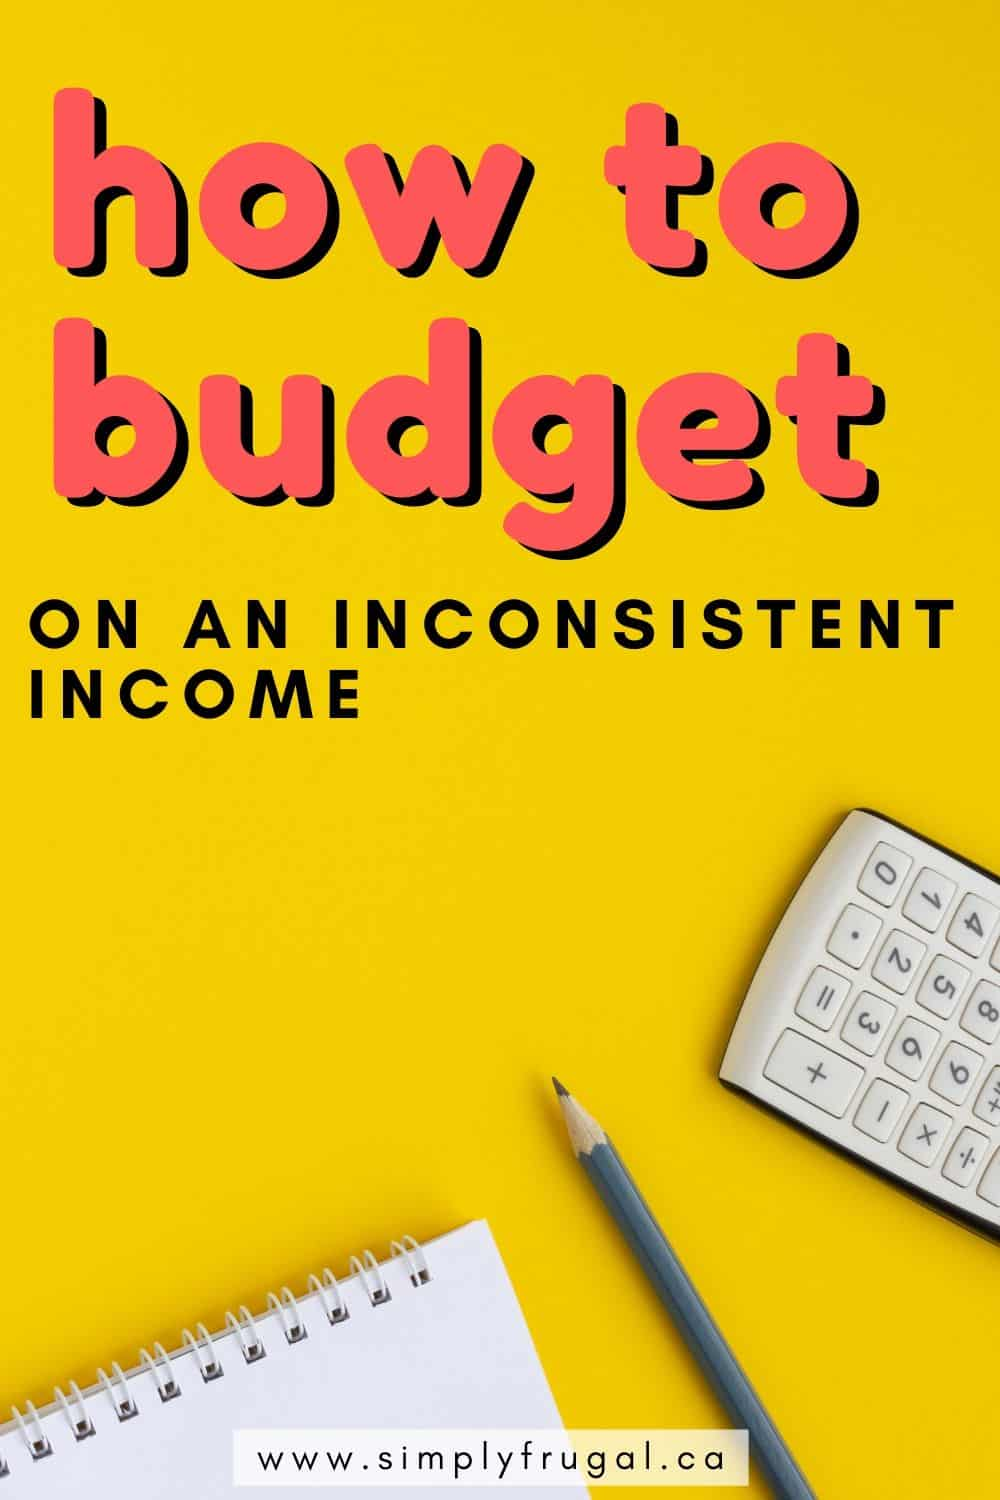 These are some fantastic budgeting tips if you have an inconsistent income!